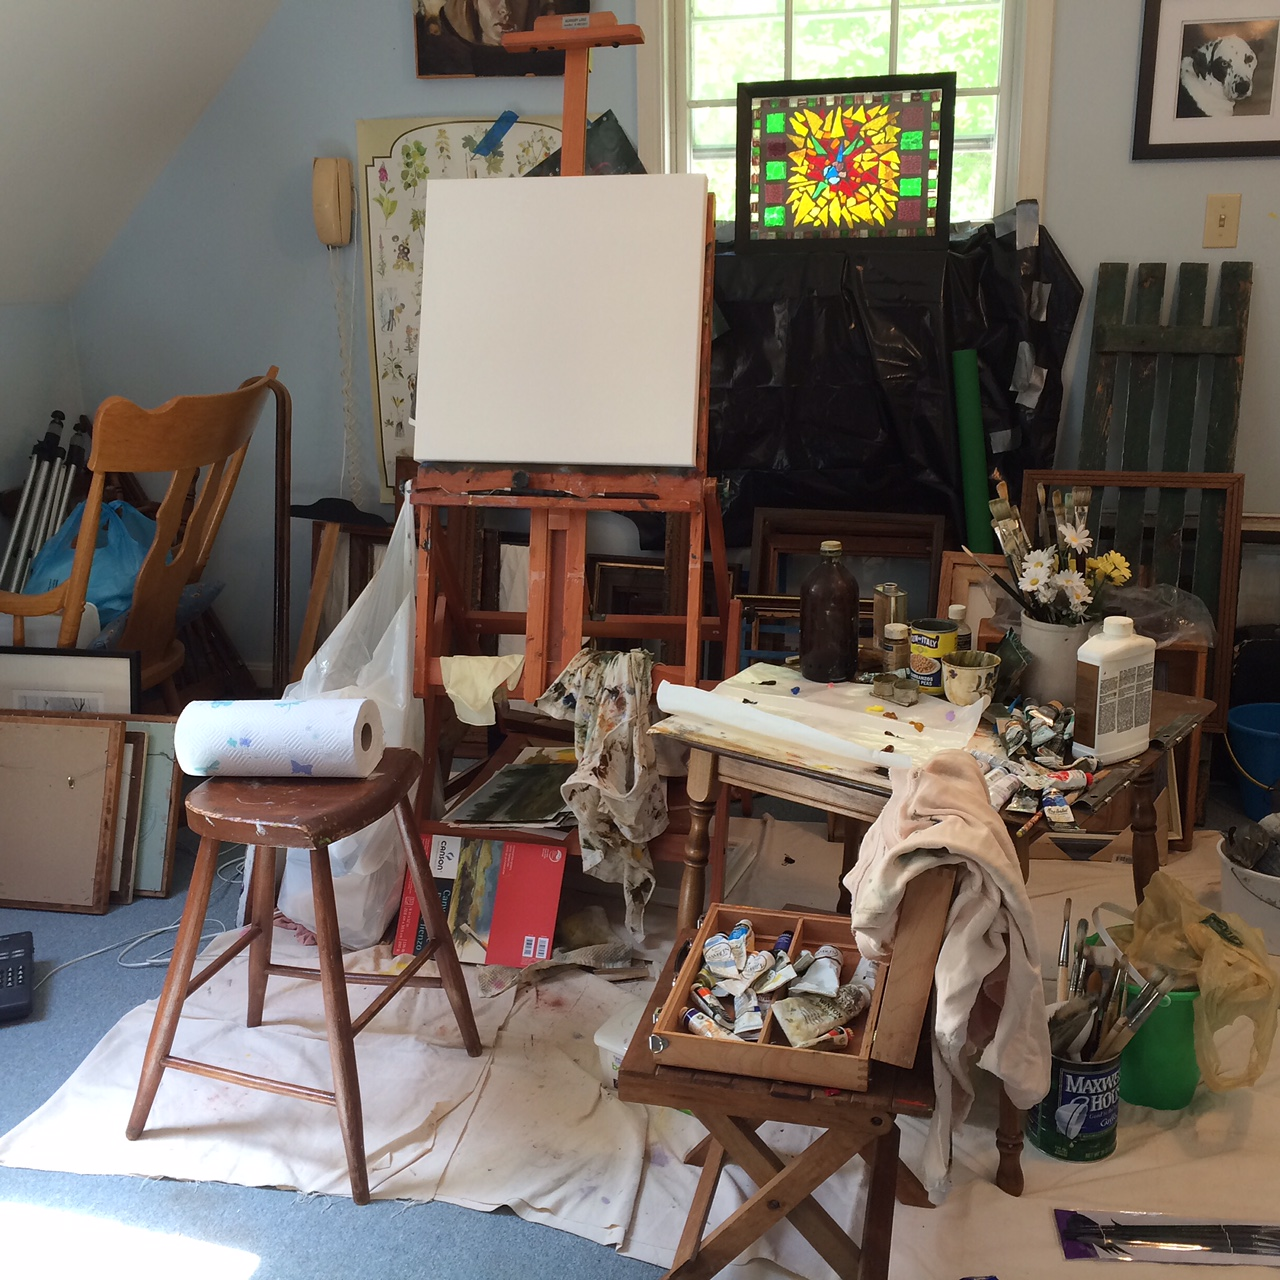 Studio in Hollywood, MD.  Humble, cluttered, but it serves my purpose.